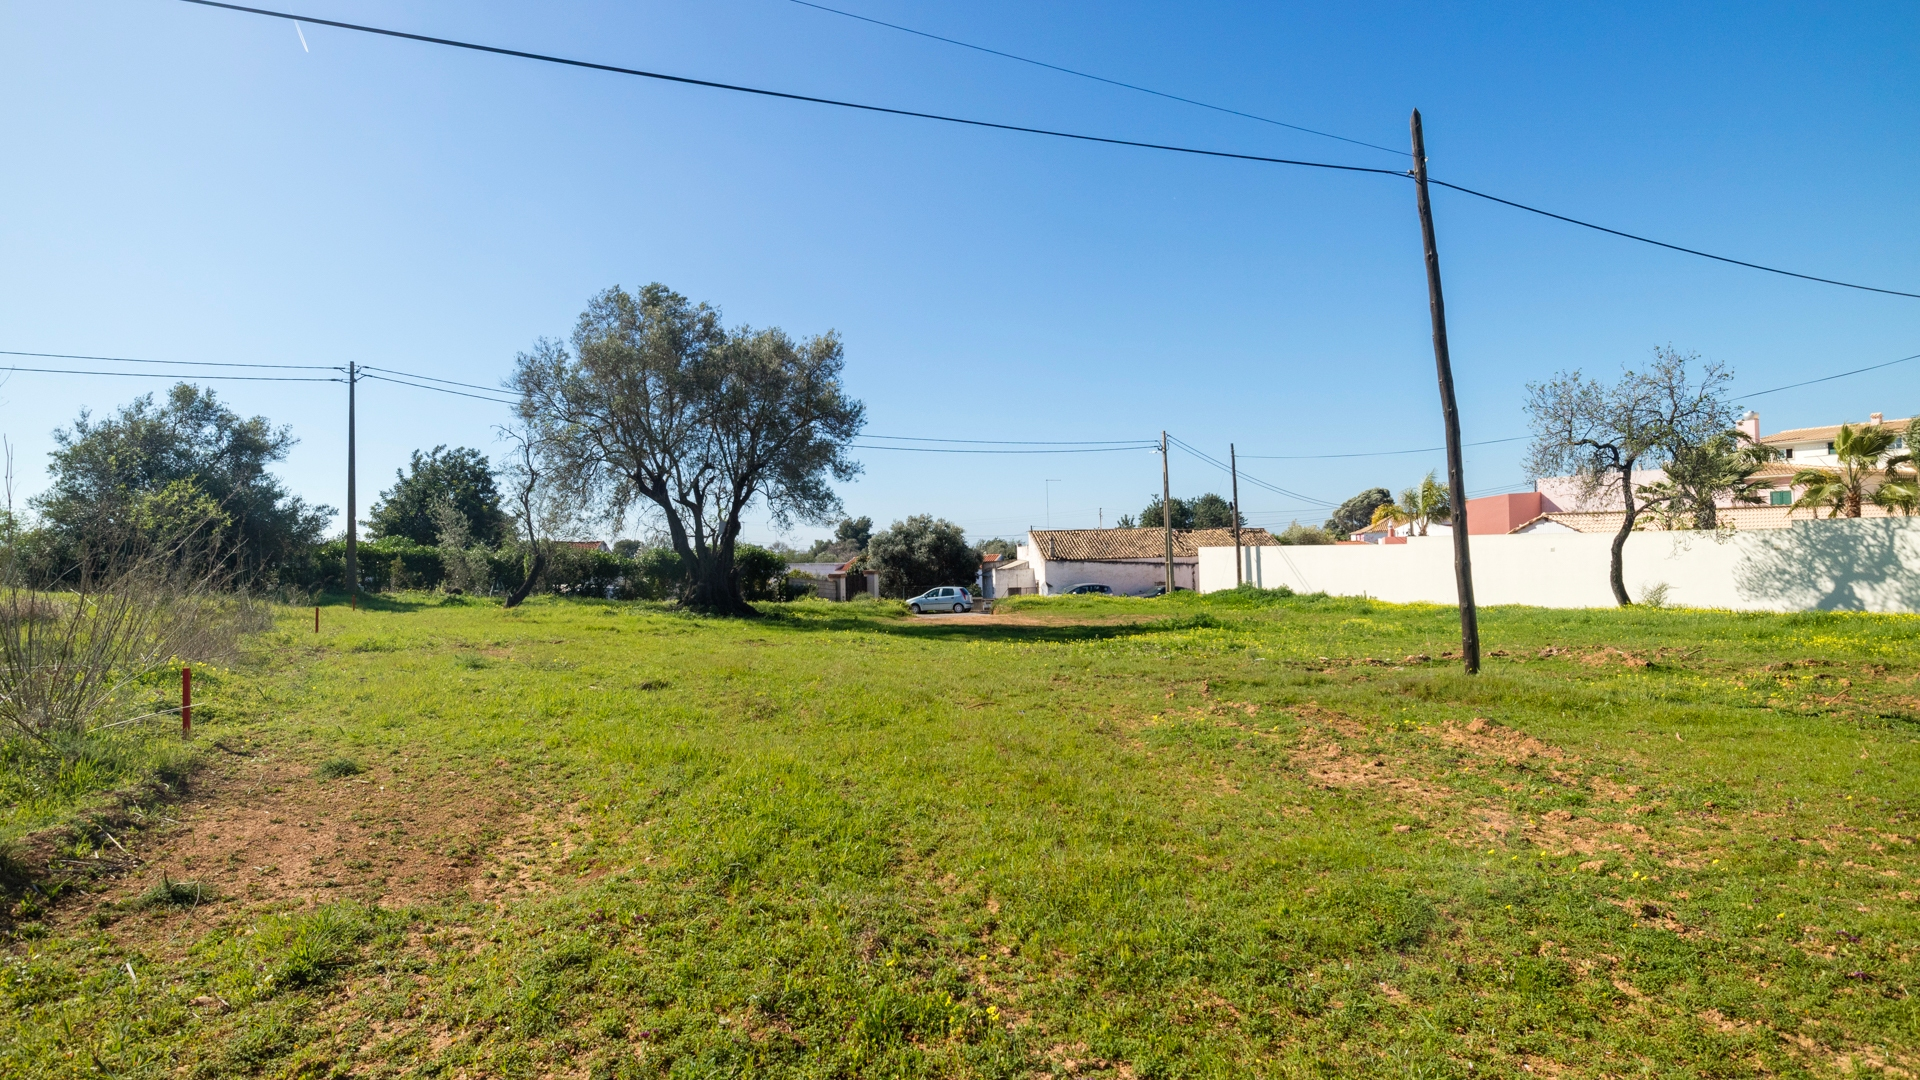 Plot with Building Permission in Central Location, near Boliqueime and Vilamoura | VM1397 Flat plot with good access in central location close to golf, beaches and Vilamoura marina. A great investment opportunity to build a dream house to your own specifications.